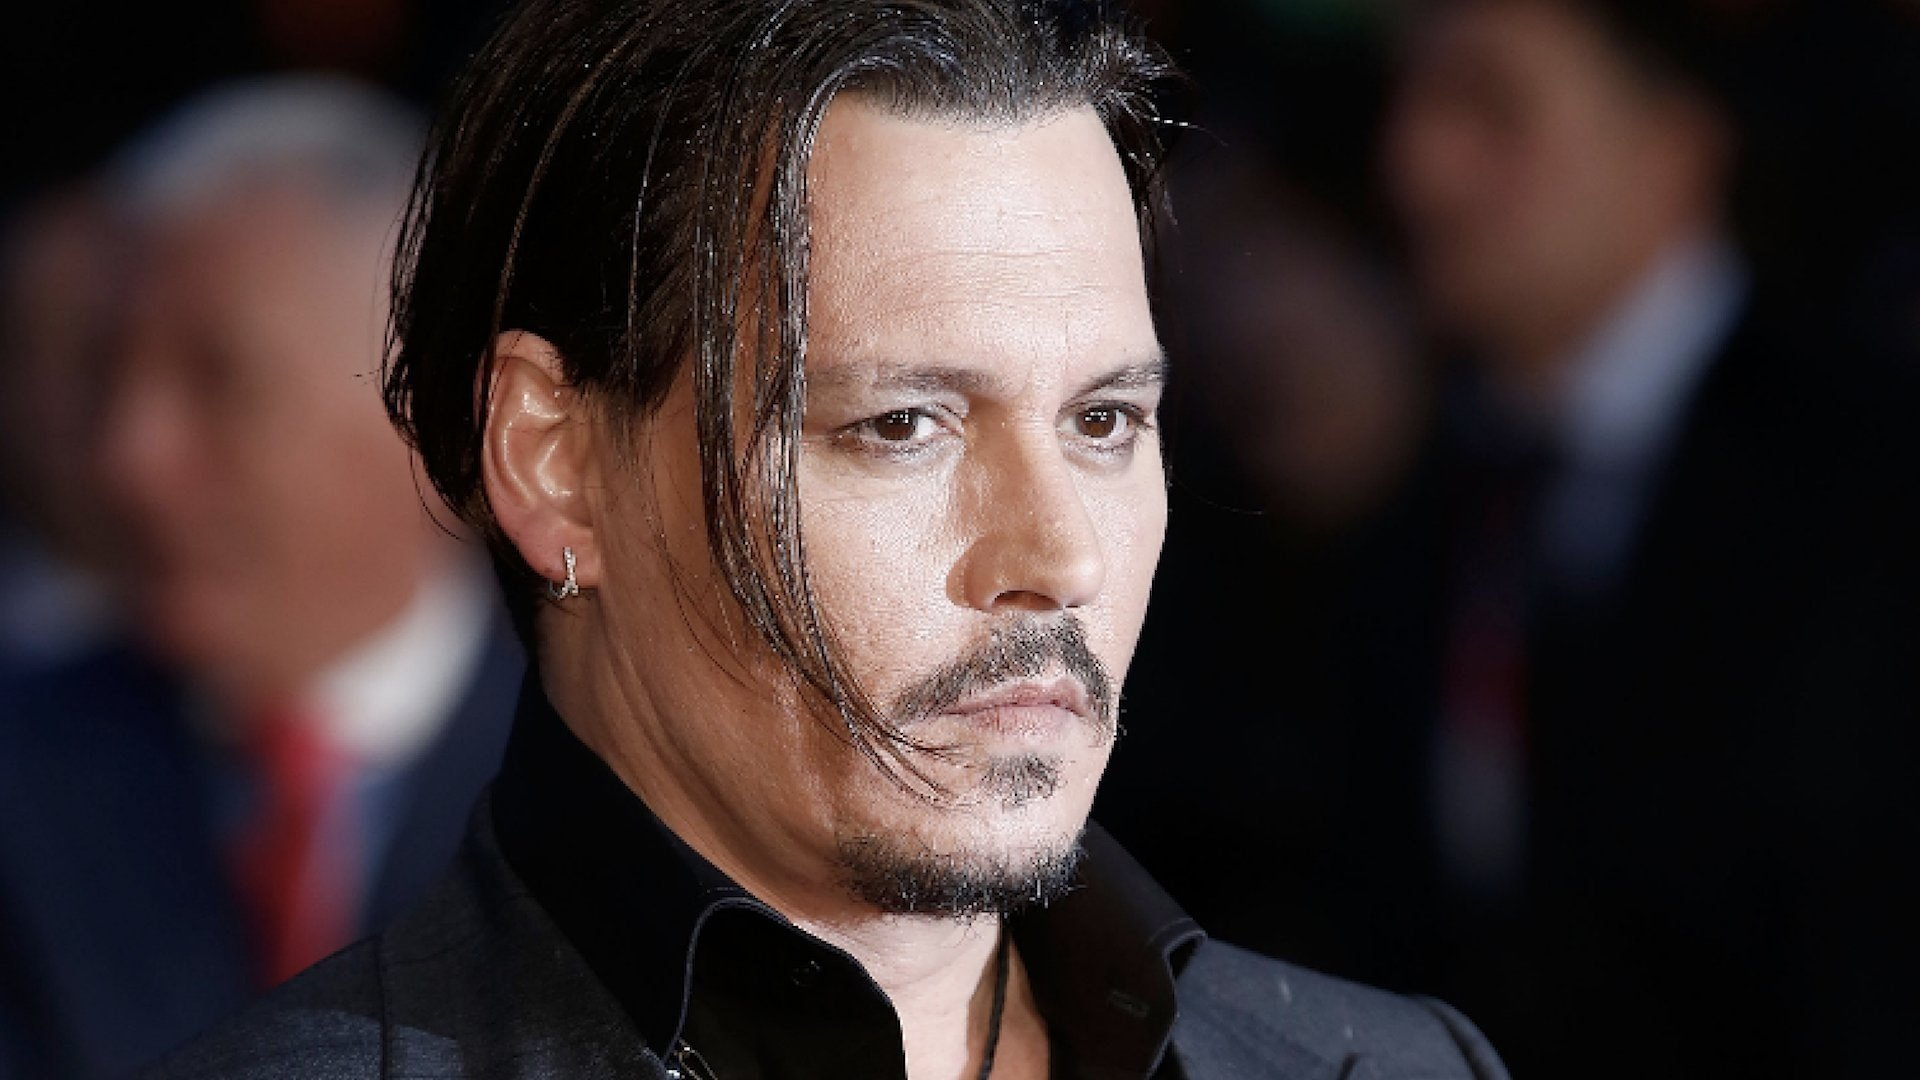 A location manager says he had trouble with Johnny Depp last year while filming in Los Angeles.